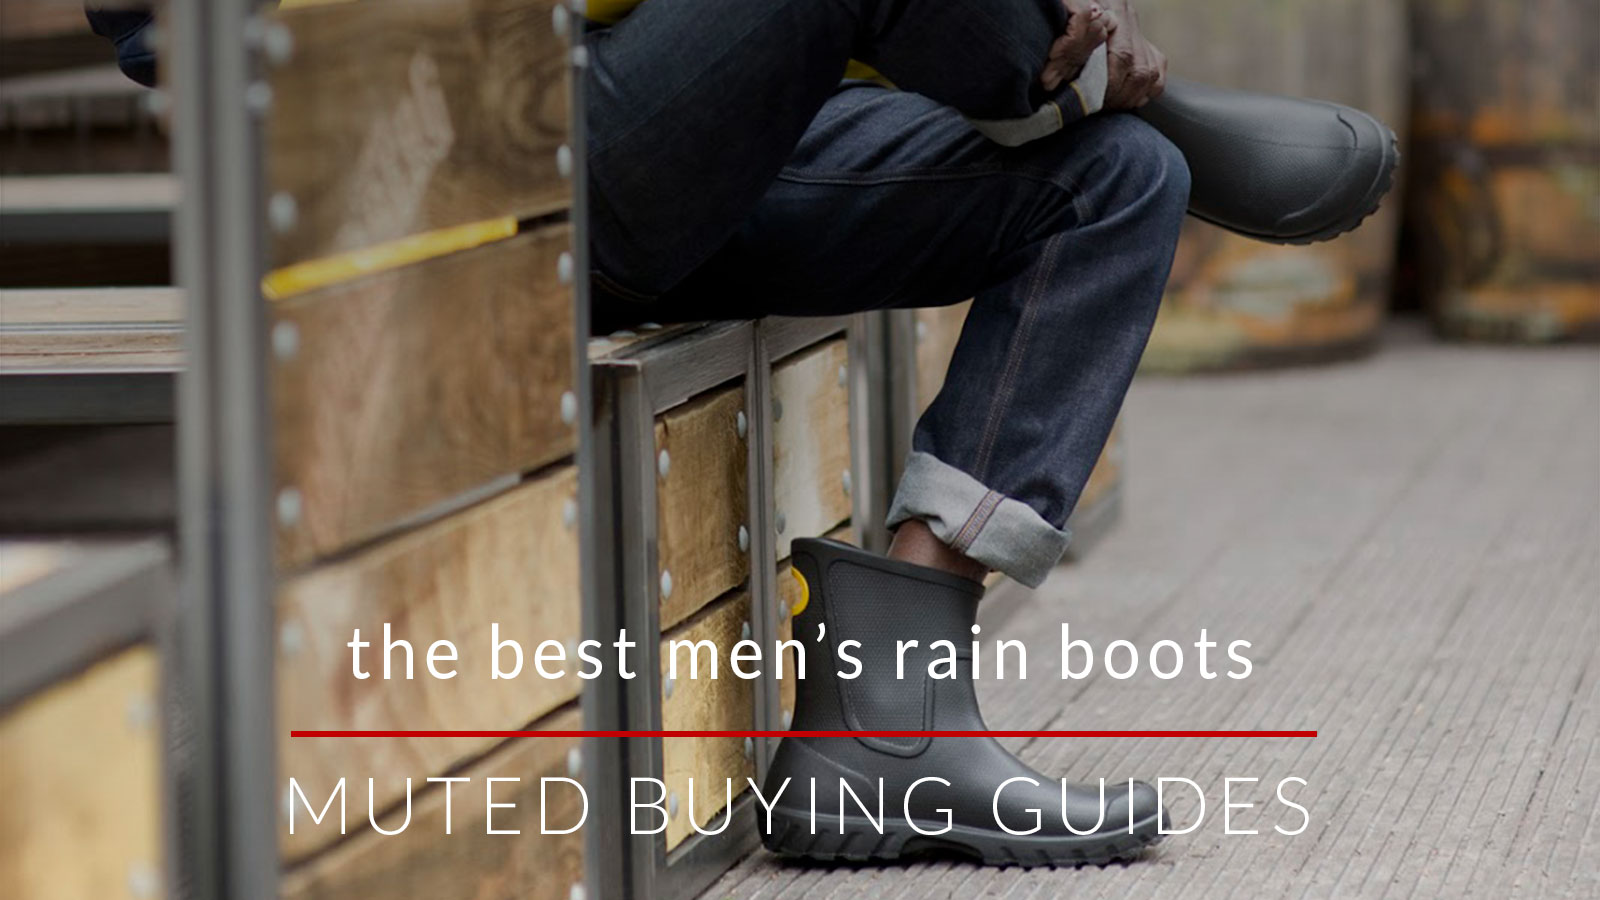 the best men's rain boots